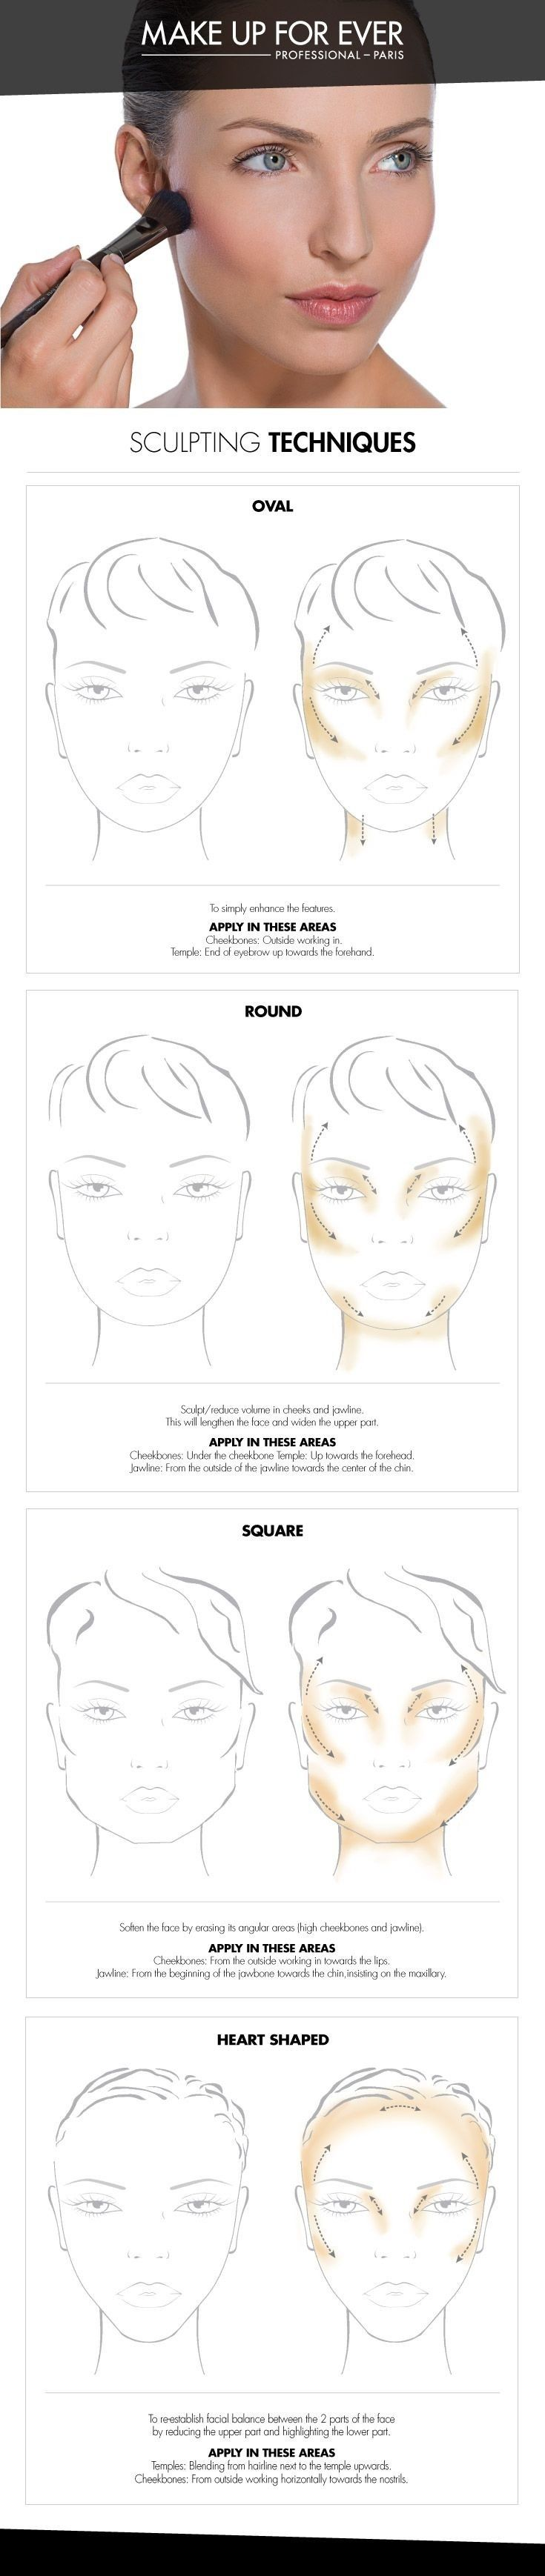 Contouring Techniques Based On Face Shape! #Beauty #Tip